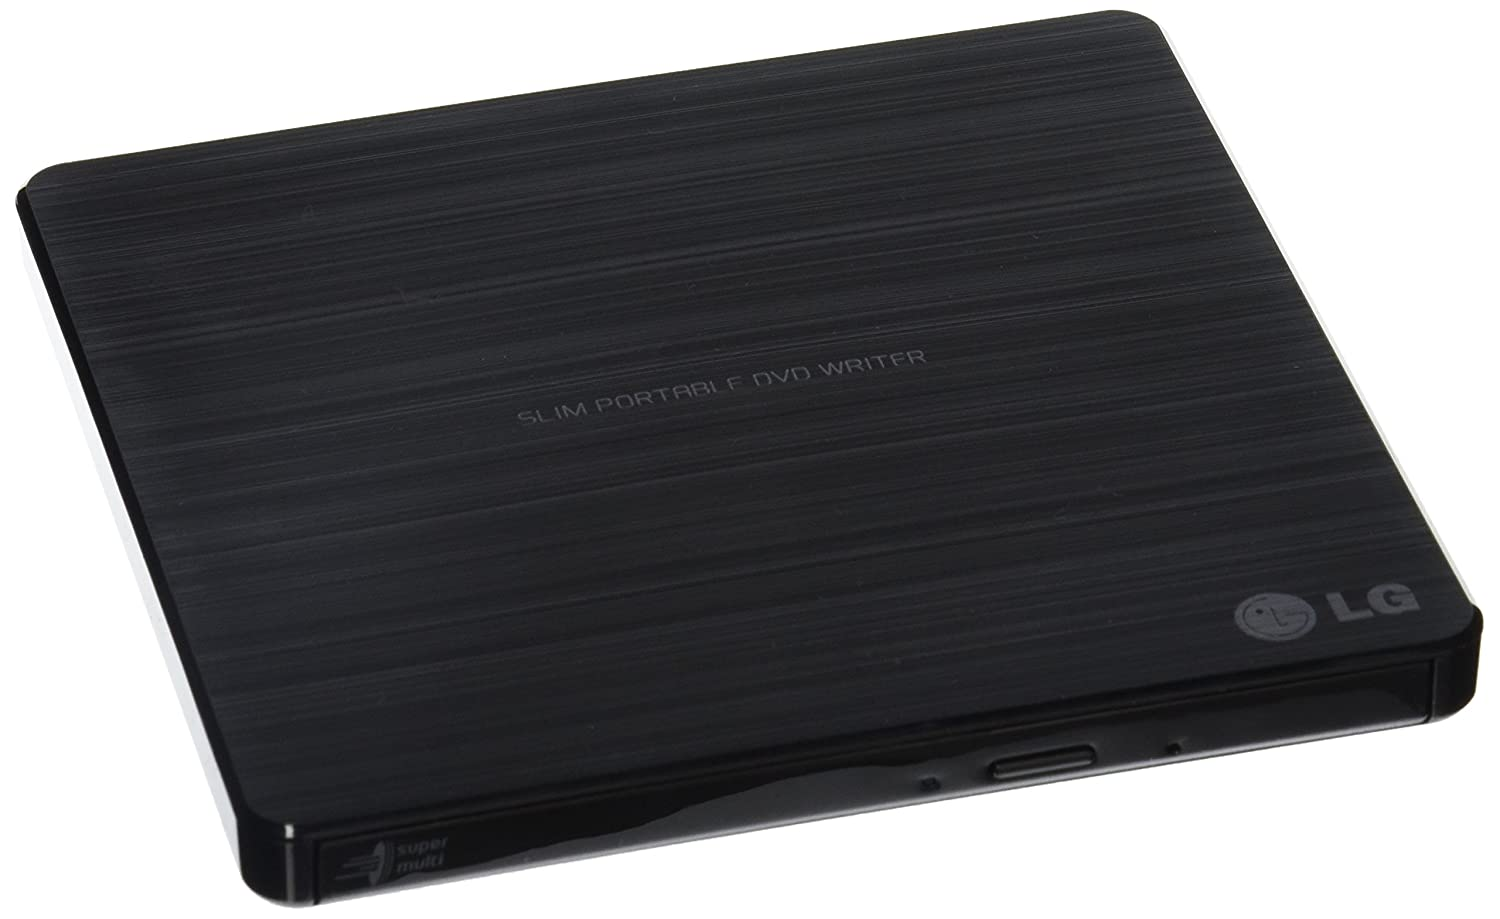 LG Electronics 8X USB 2.0 Ultra Slim Portable DVD Rewriter, External Drive with M-DISC Support, Retail (Black) GP60NB50